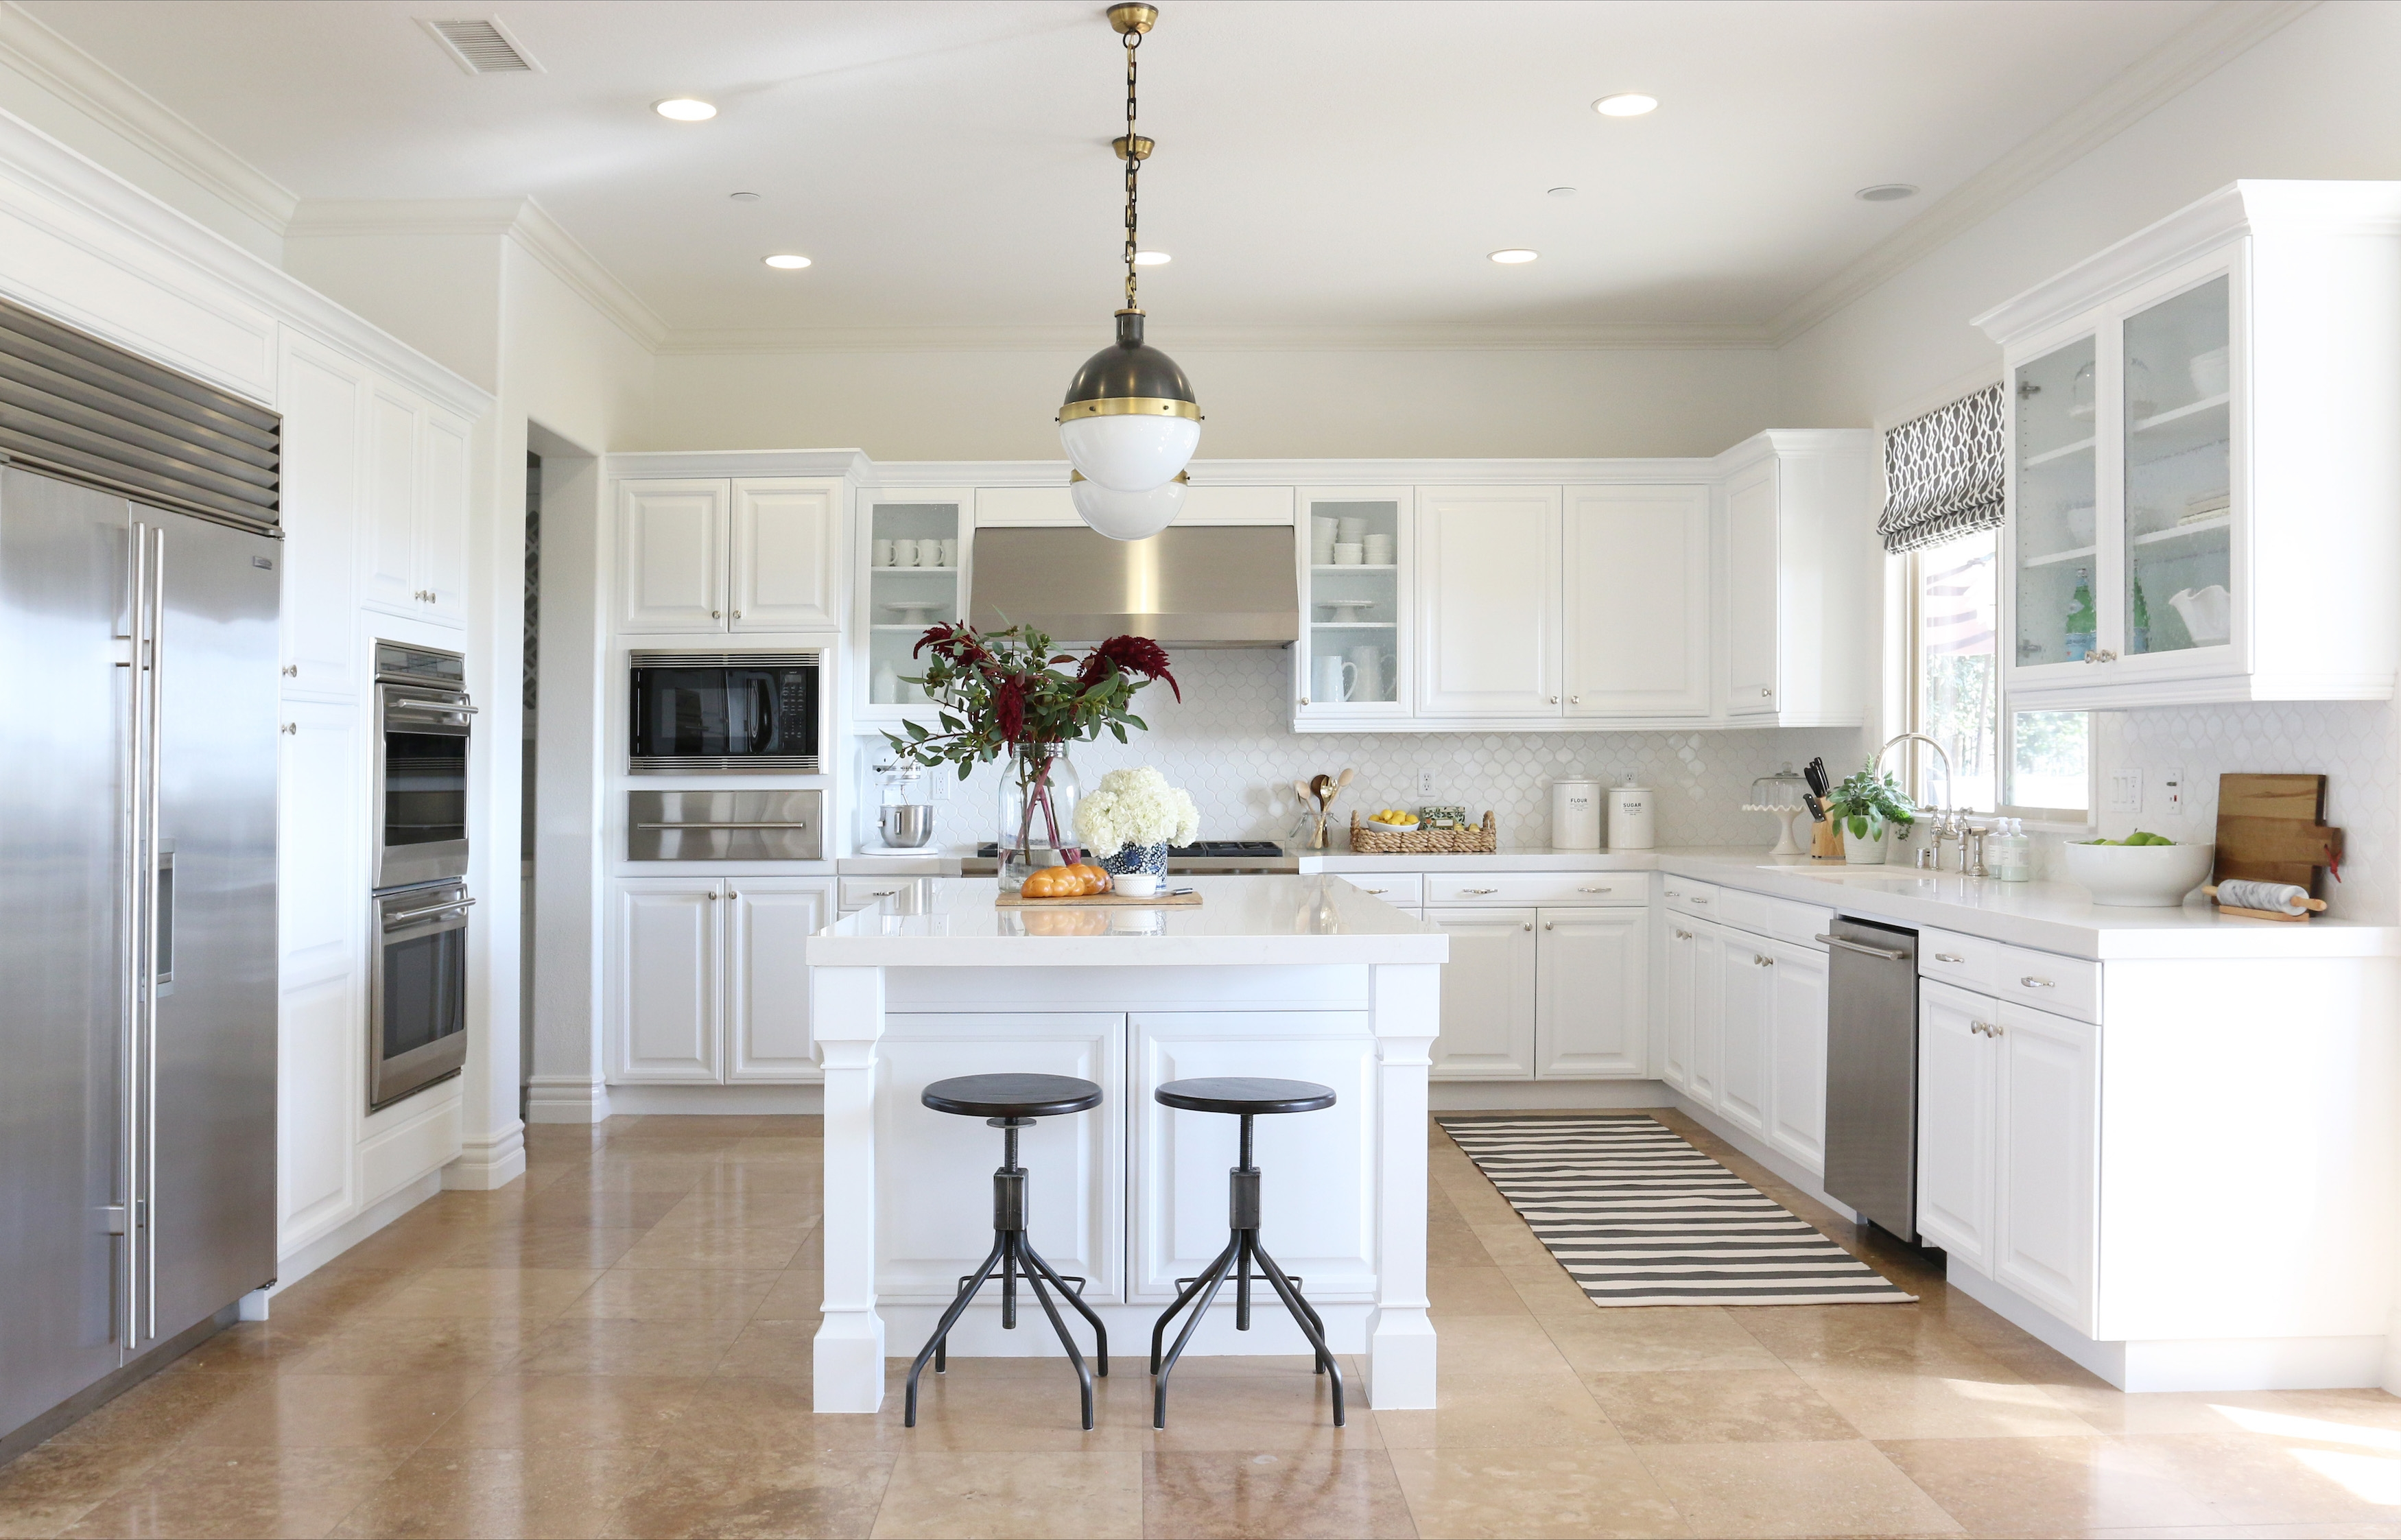 Permalink to White Cabinet Kitchen Ideas